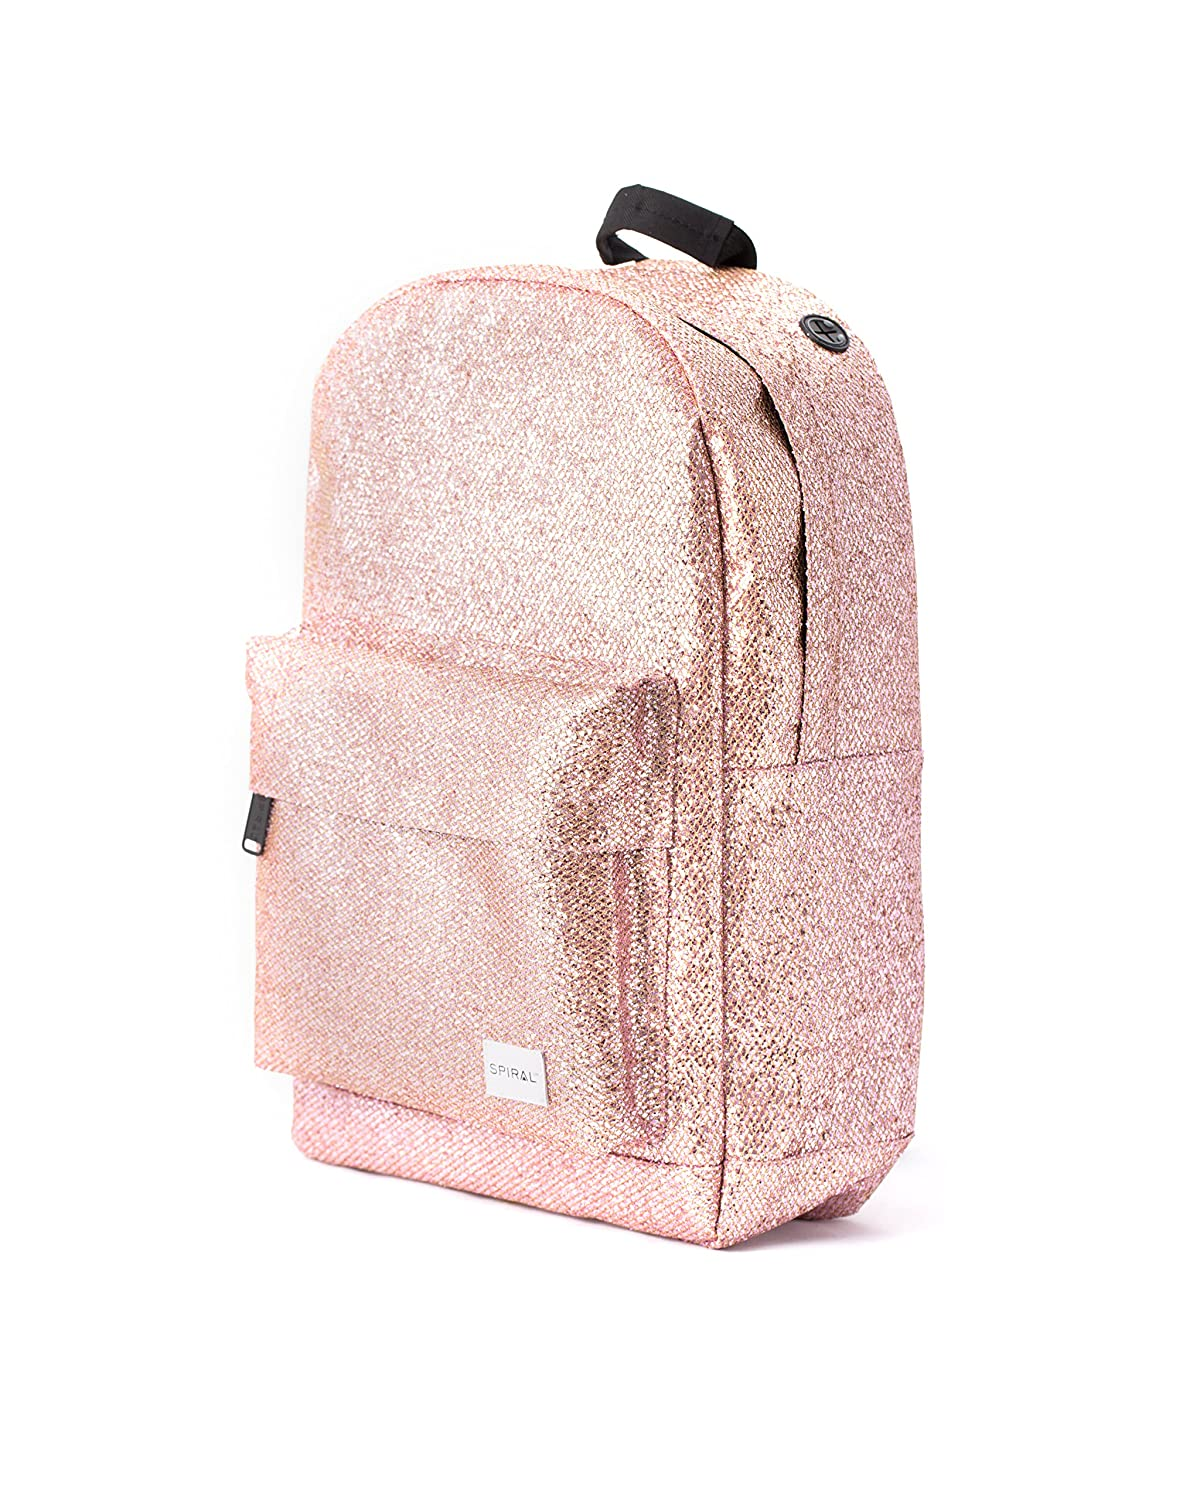 Free Shipping For Sale Spiral Og Bellini Glamour Casual Daypack 44 cm Clearance Pay With Visa Free Shipping Largest Supplier bRpRTXF6